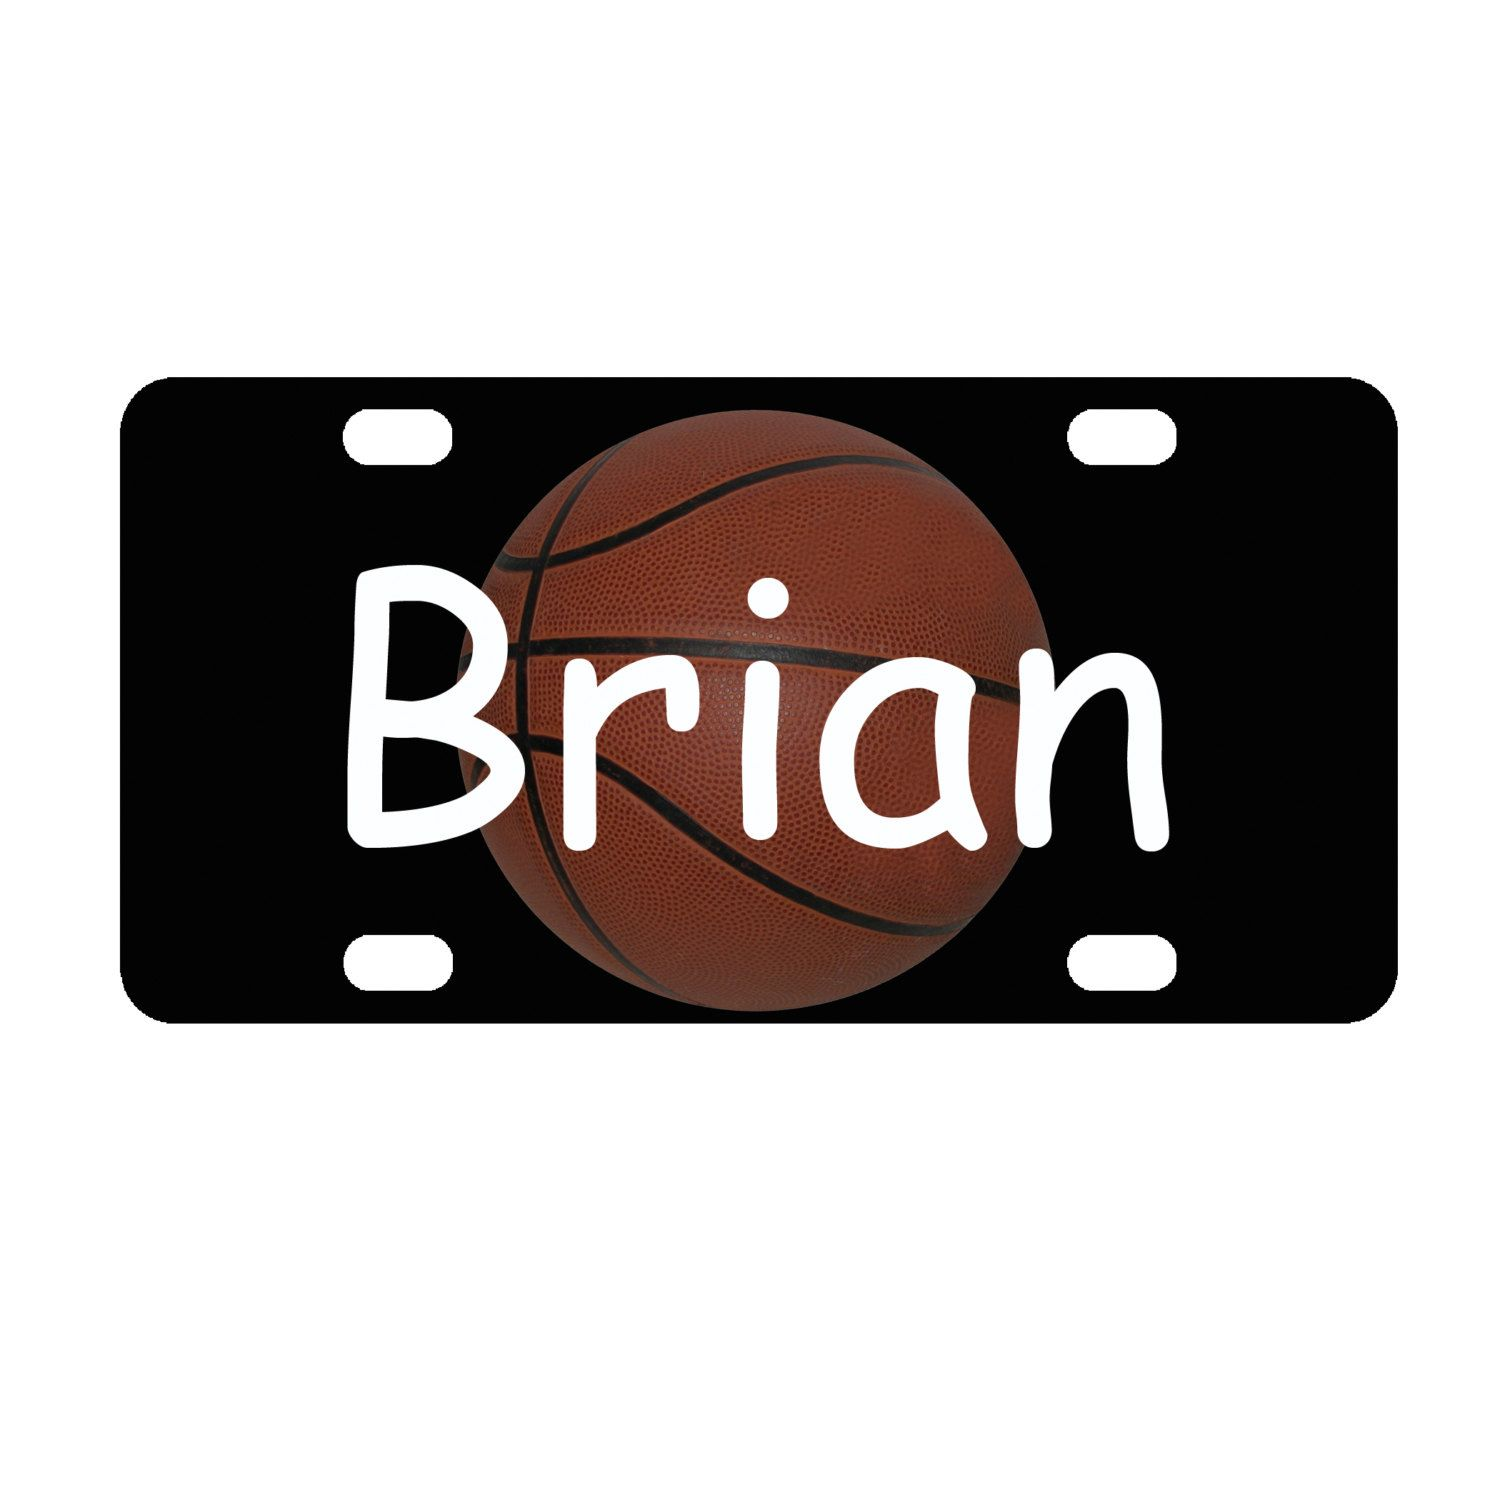 Kid\u0027s Color Basketball Personalized Mini License Plate Bike Plate Bedroom Door Sign by everydayessentials on Etsy  sc 1 st  Pinterest & Kid\u0027s Color Basketball Personalized Mini License Plate Bike Plate ...